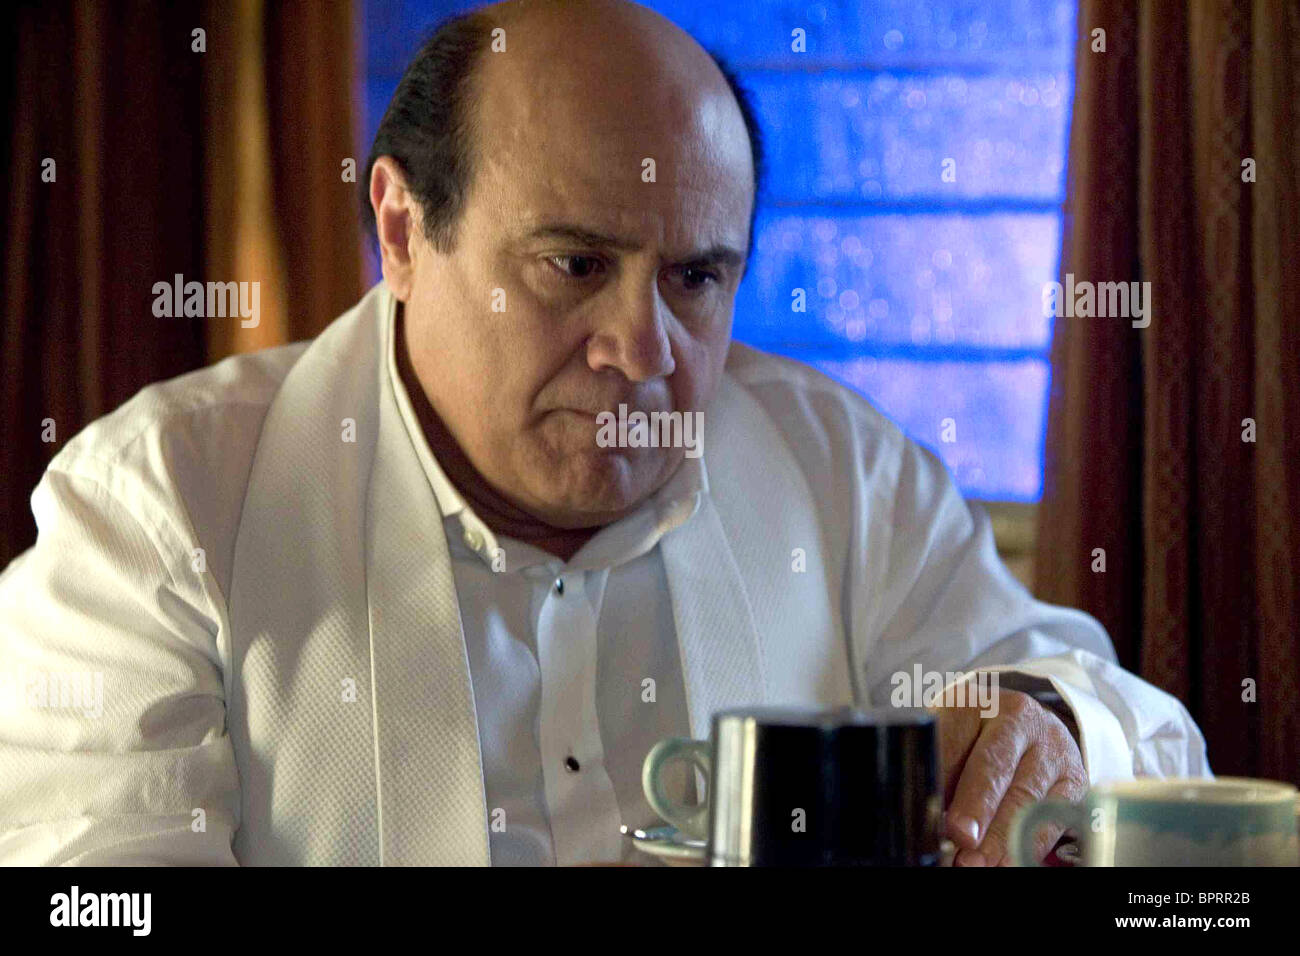 DANNY DEVITO EVEN MONEY (2006) - Stock Image